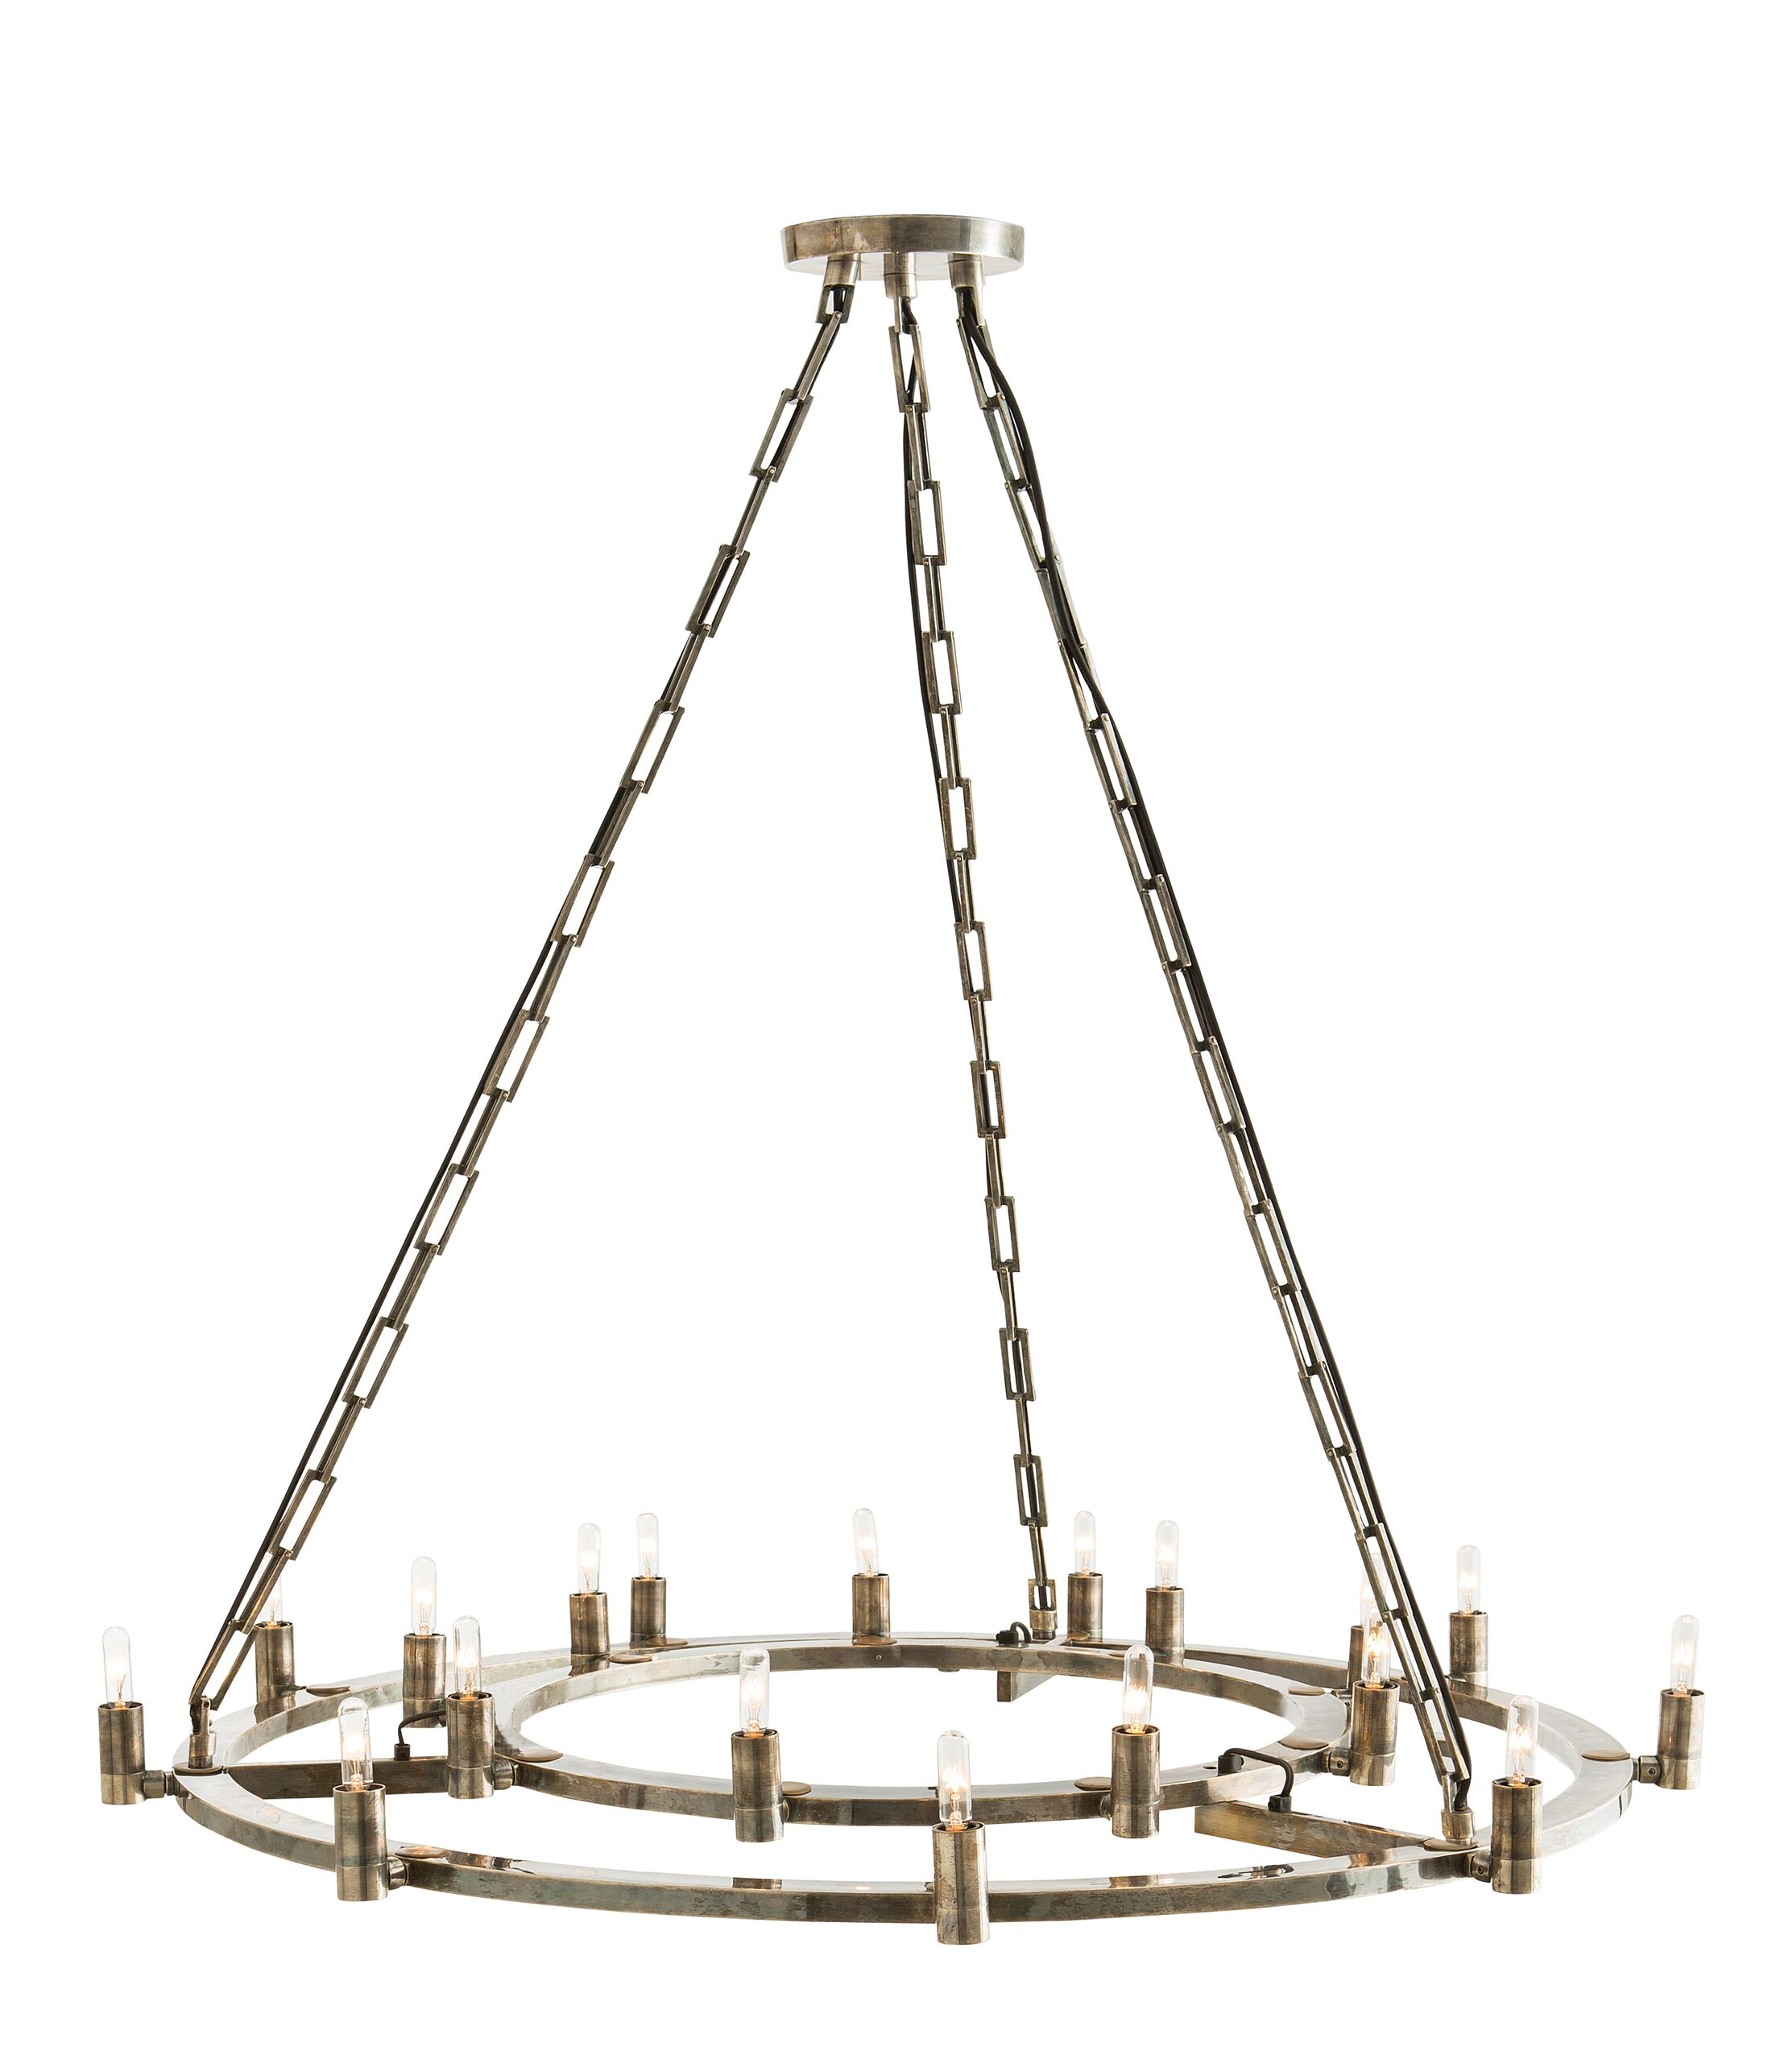 Kaylor 18-Light Wagon Wheel Chandelier